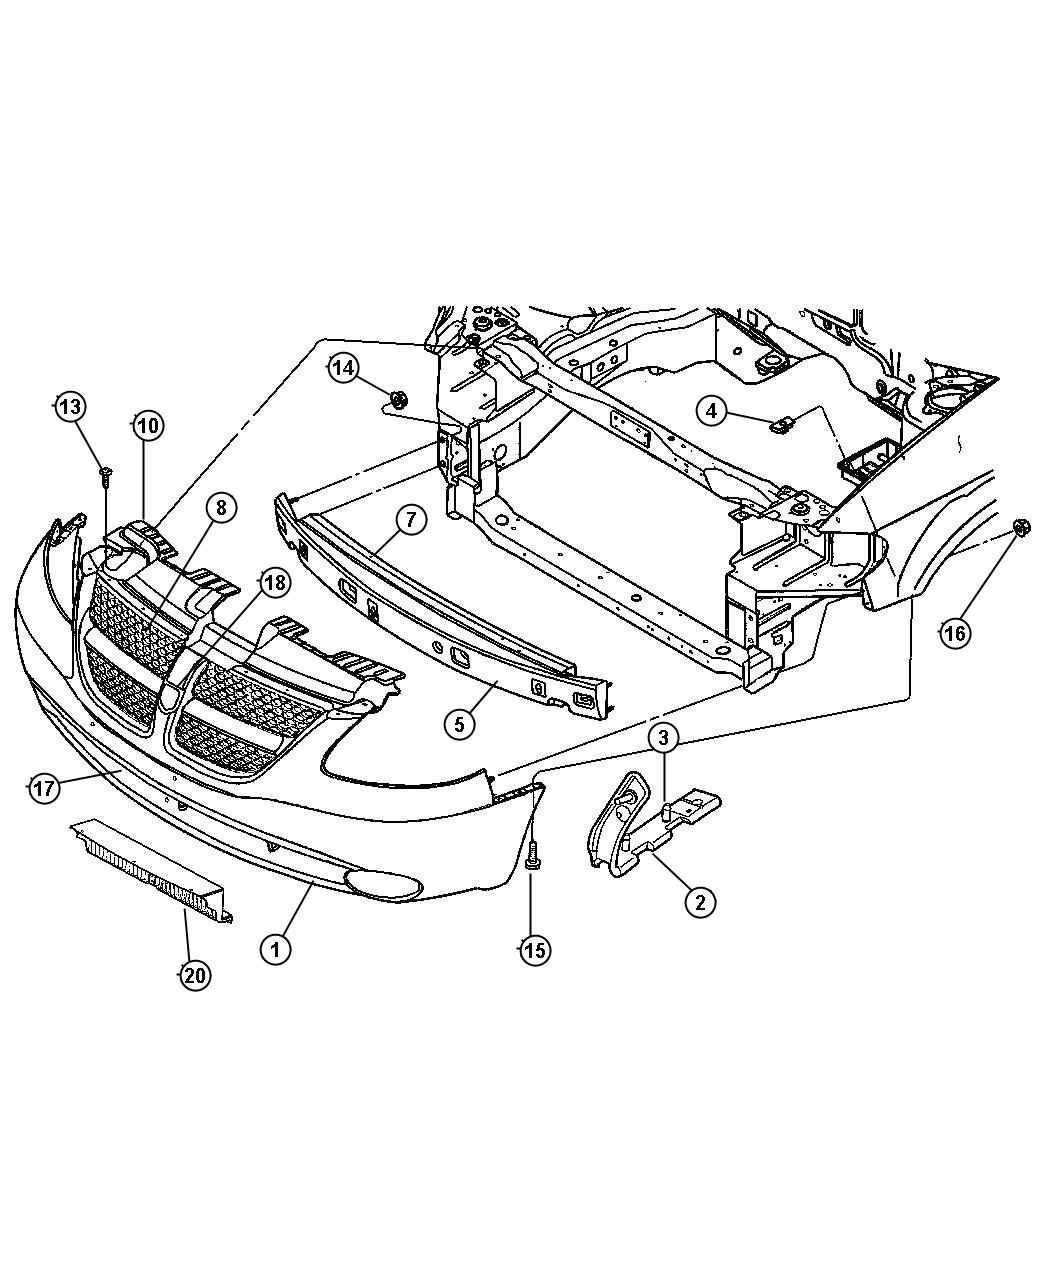 chrysler town and country parts diagram e30 m50 swap wiring gm car paint colors source